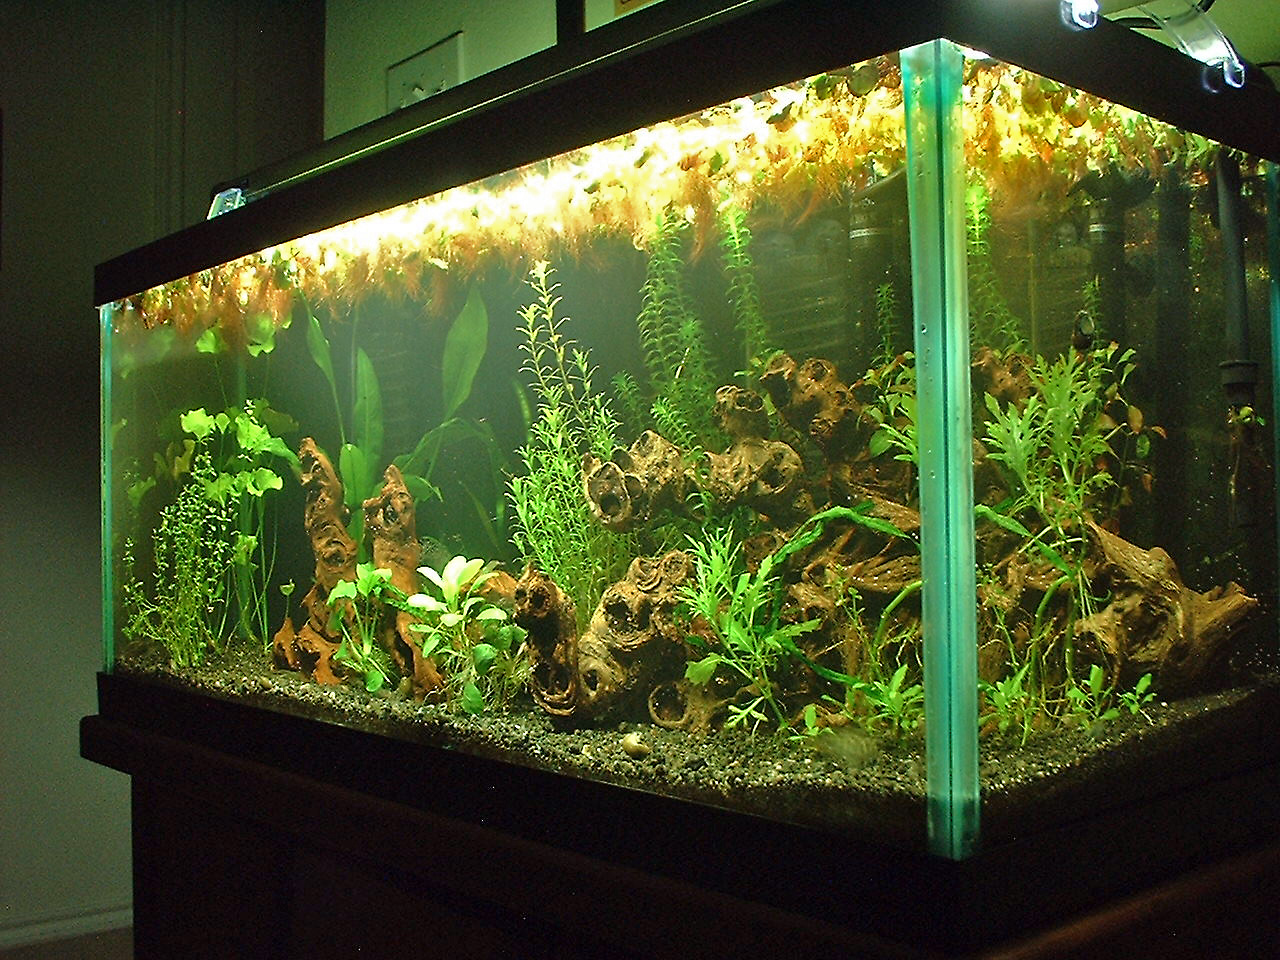 30 gallon planted aquarium a photo on flickriver for Floating plants for betta fish